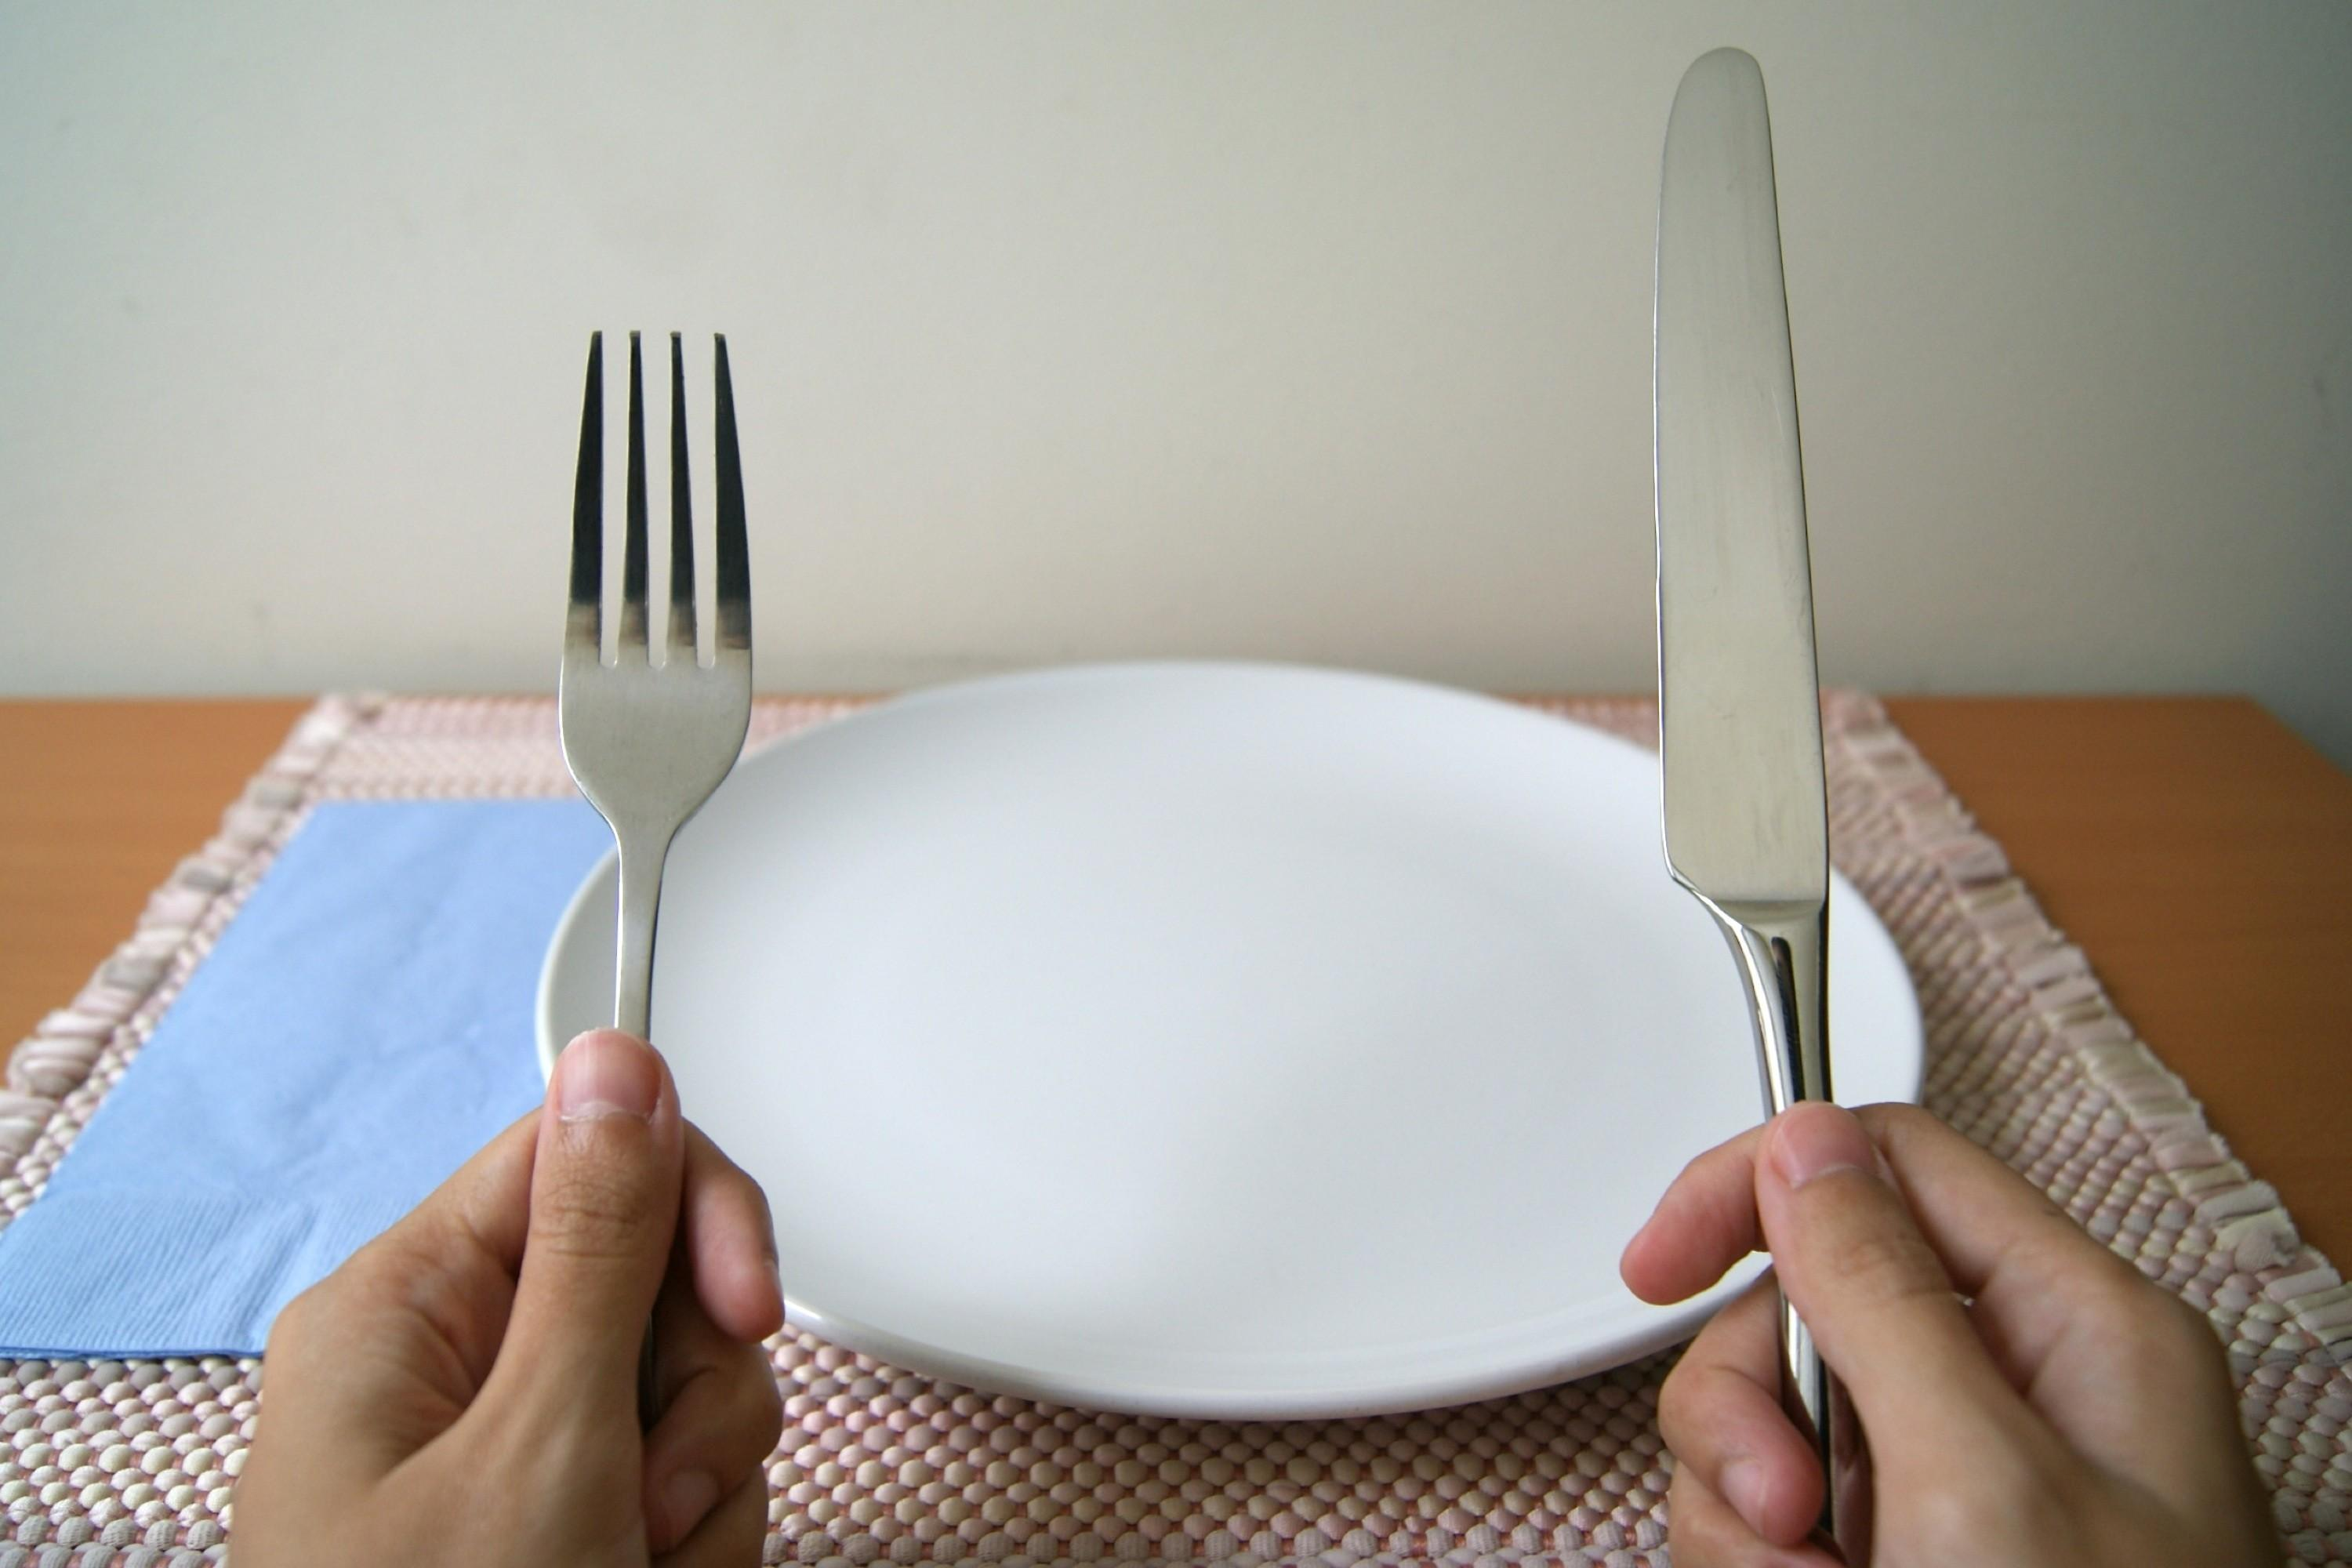 Place Utensils Finished Eating Our Everyday Life